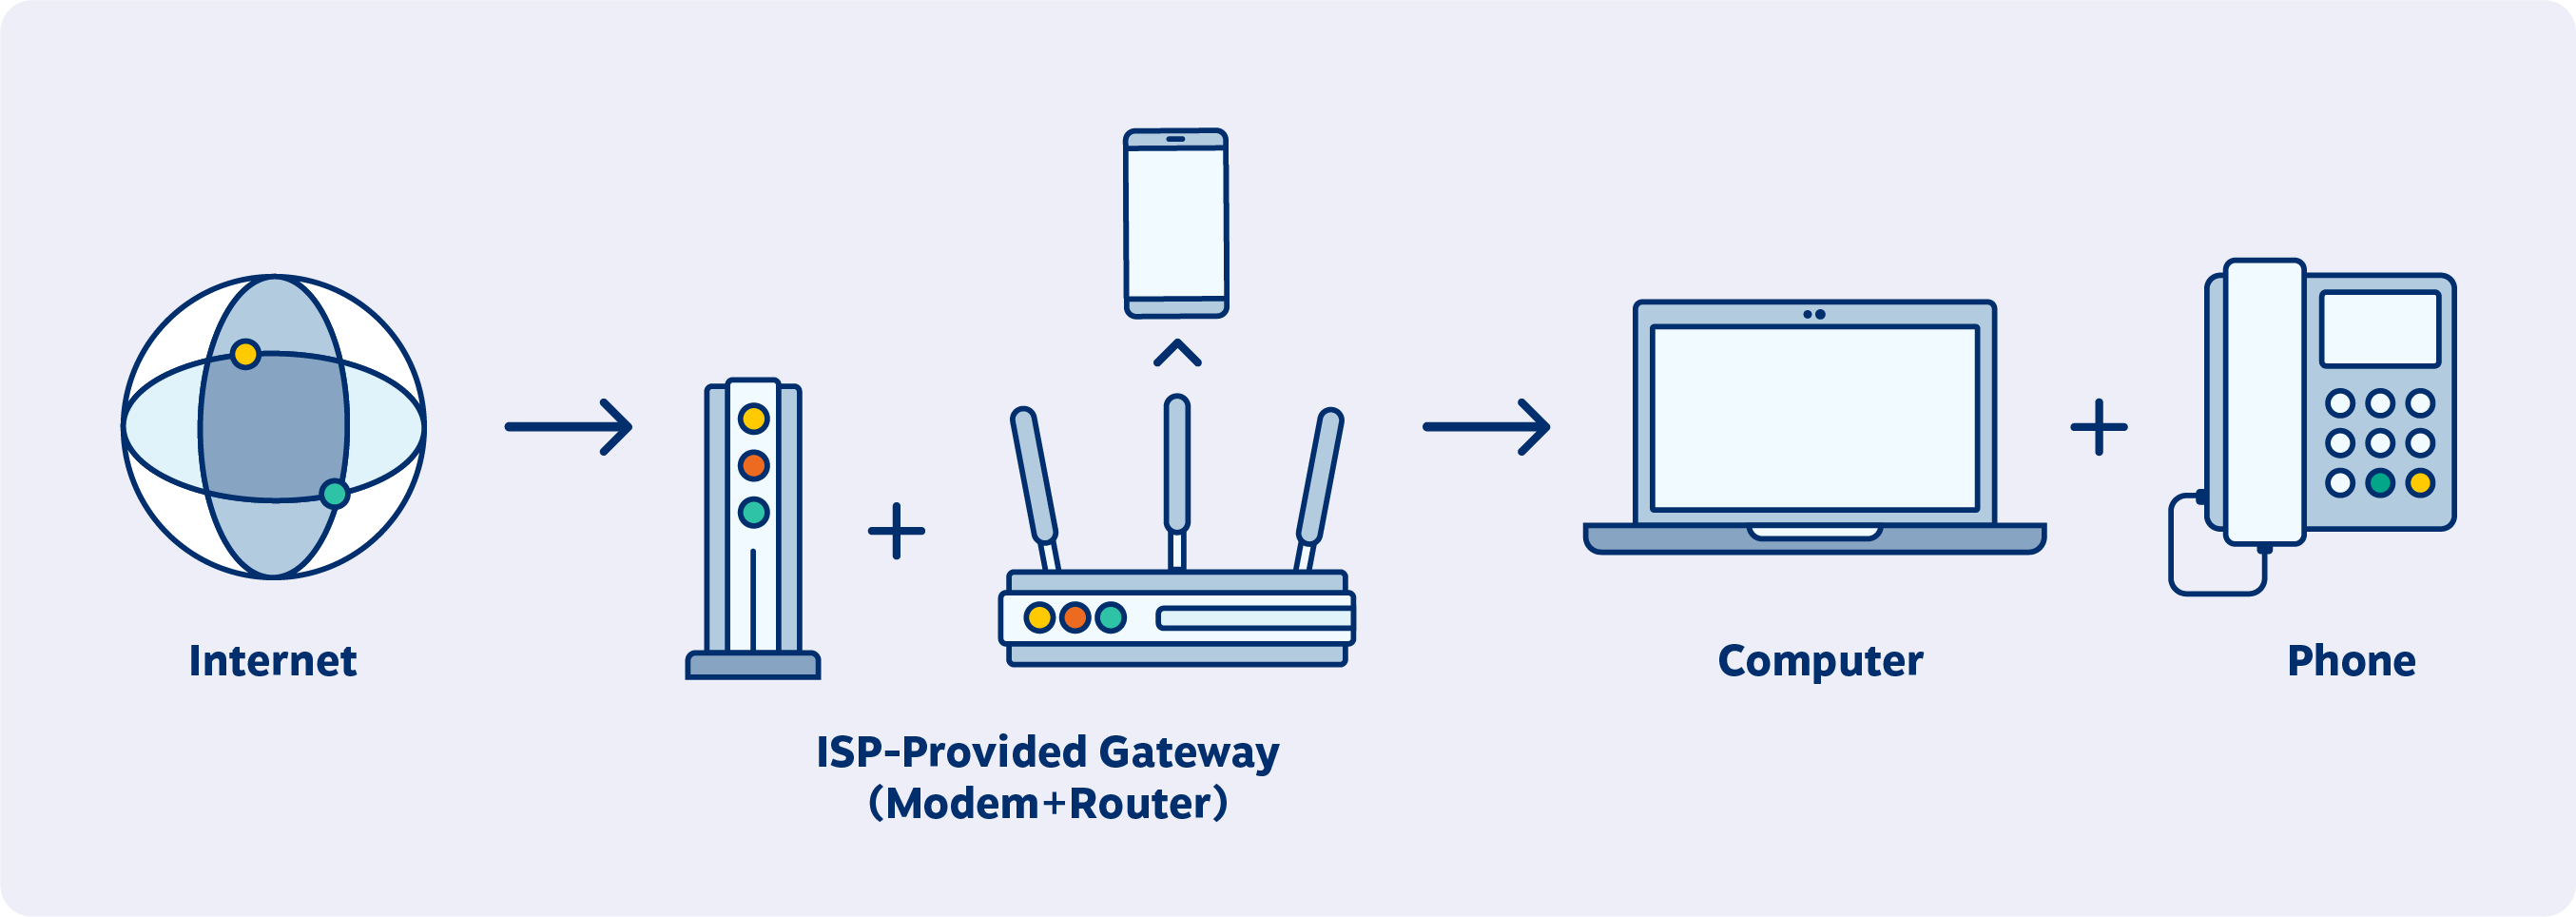 Typical VoIP phone system setup for an employee working from home. (Network Diagram)